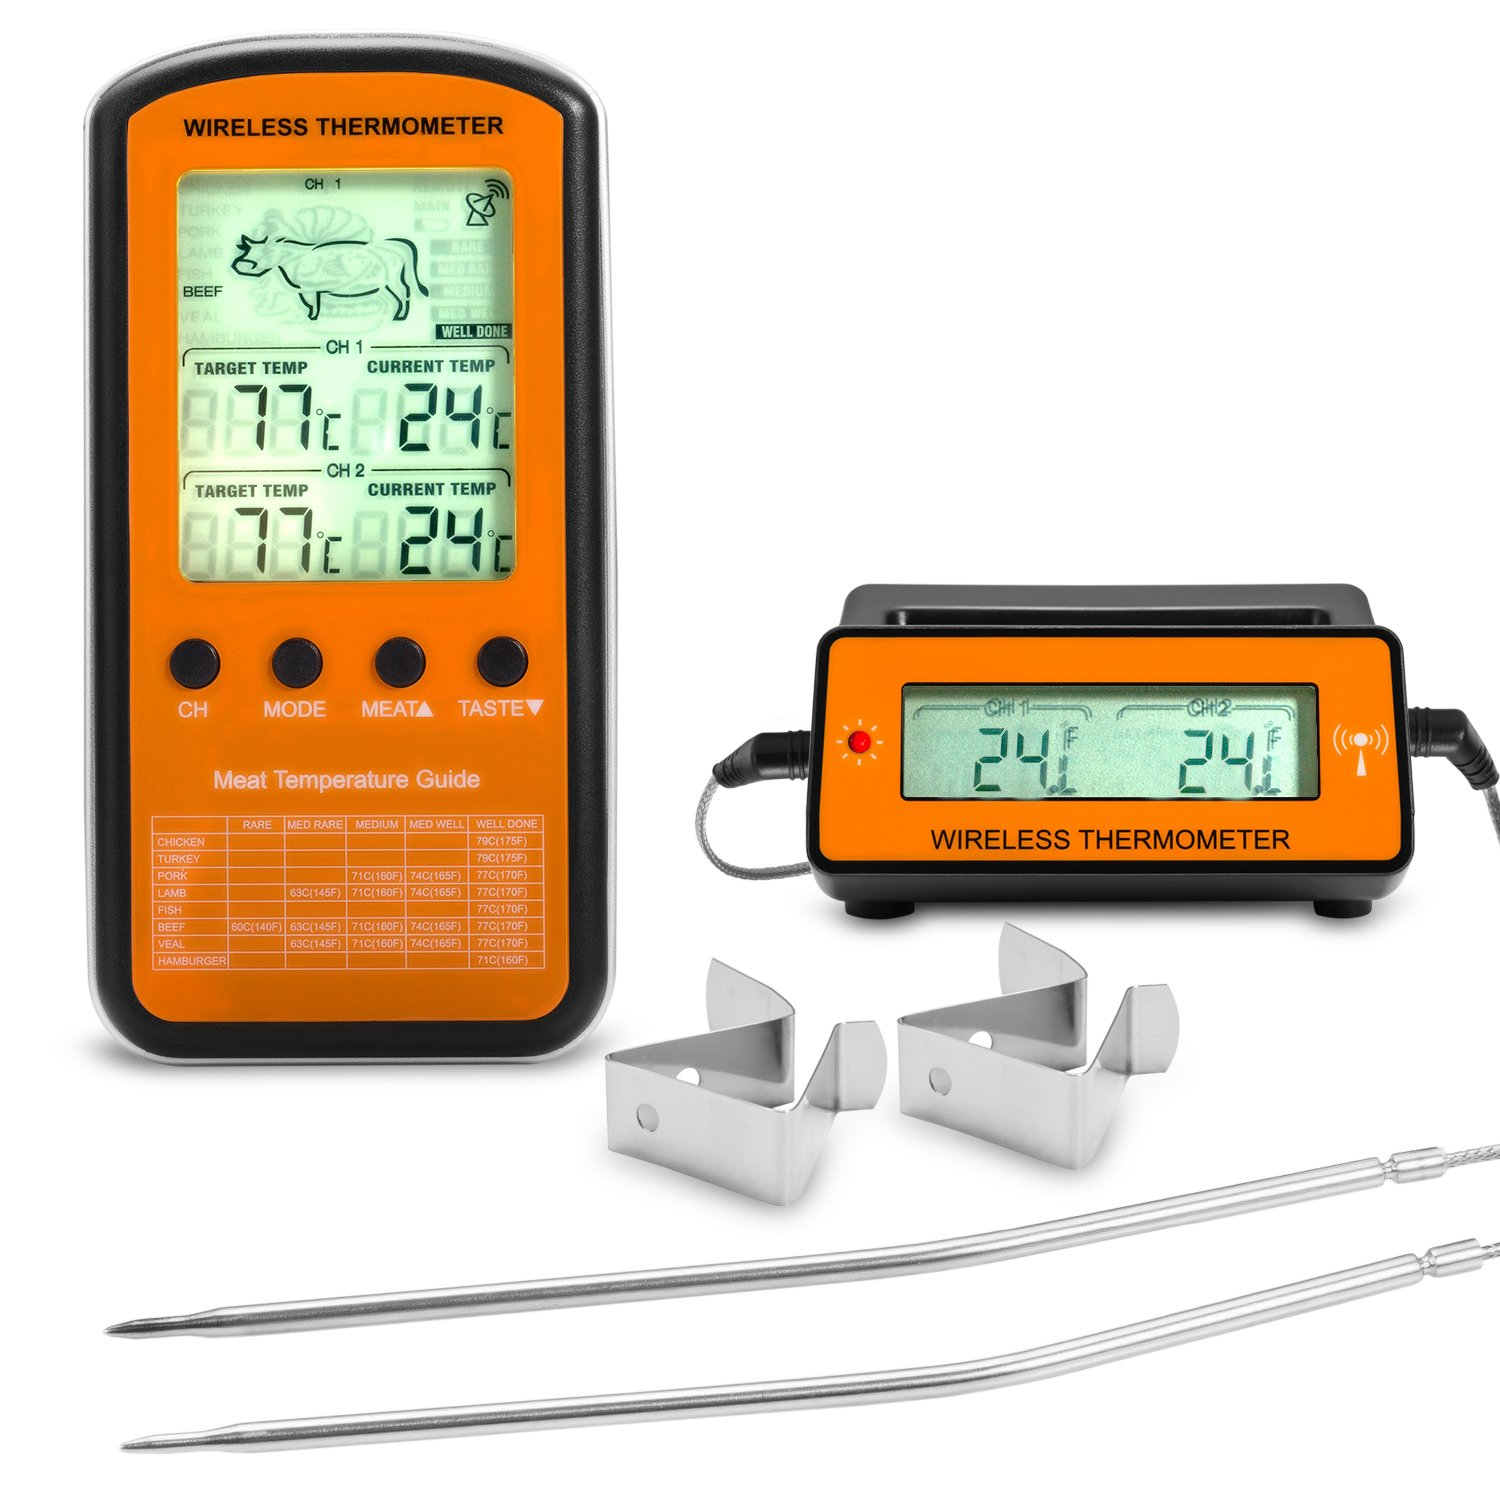 Occer Wireless Digital Electric Meat Thermometer Remote Home Cooking Oven Thermometers With Dual Probe Monitoring Temperature For BBQ Grilling Kitchen Smoker For Red,White Meat